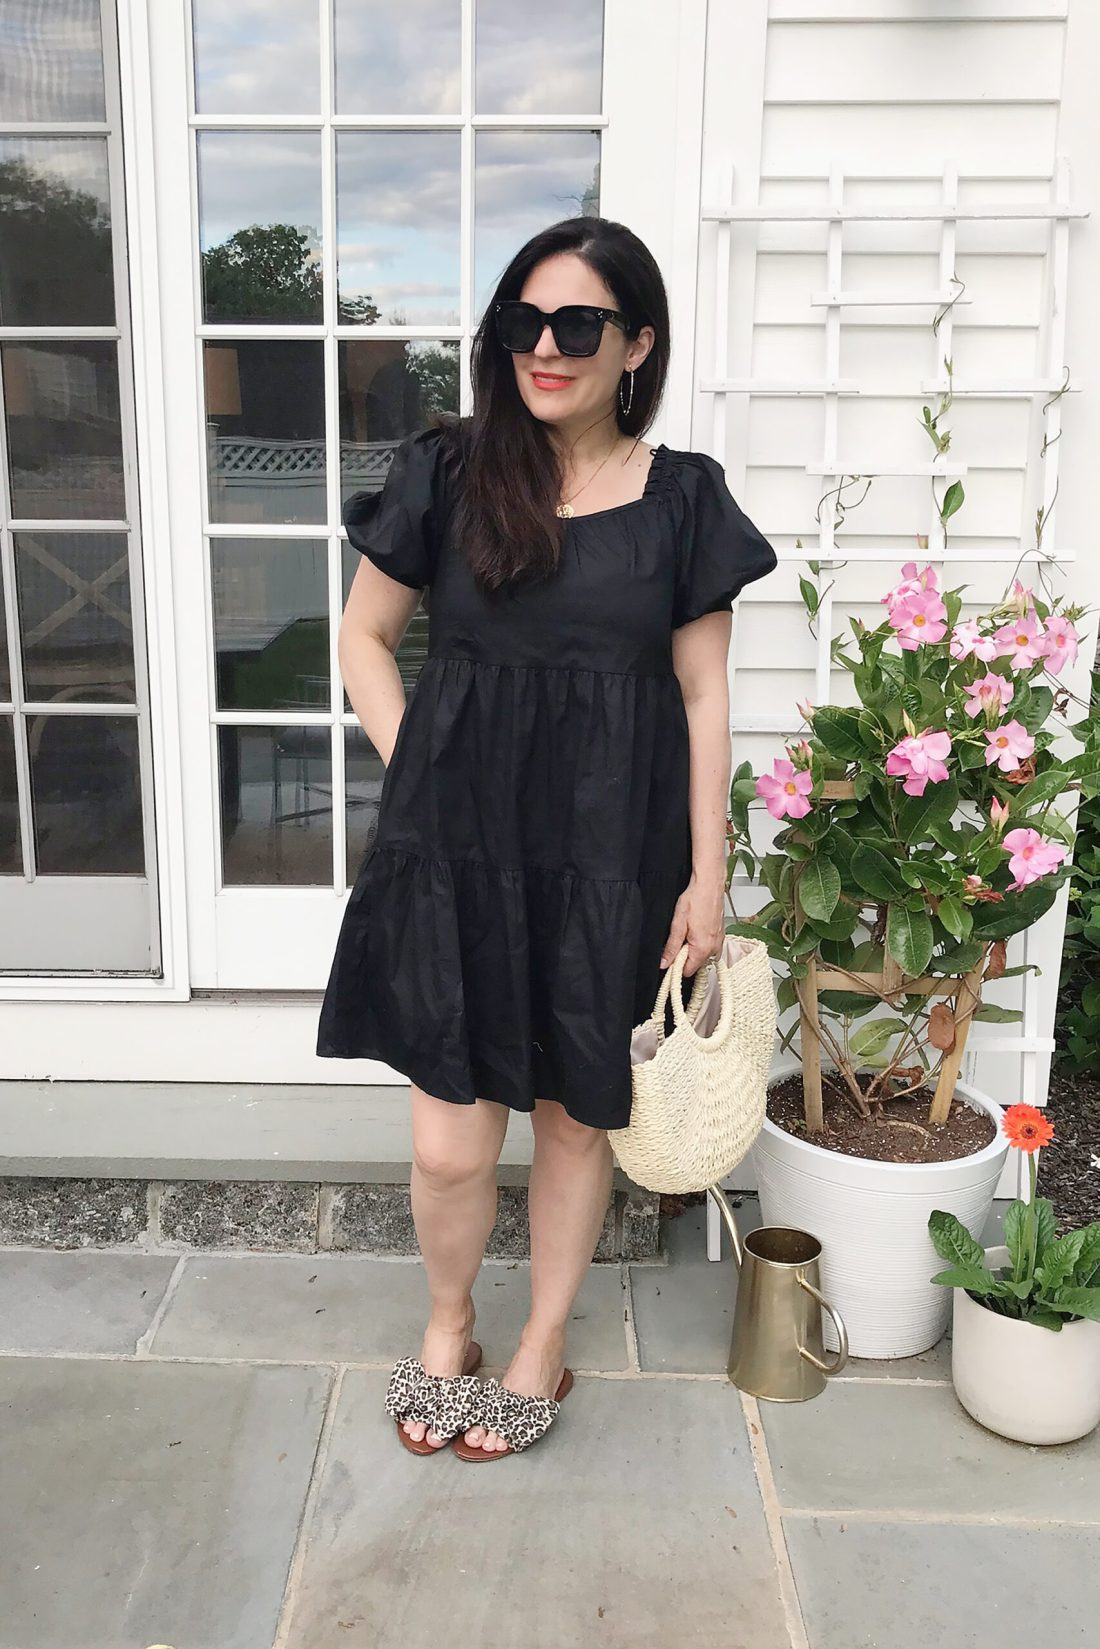 Obsessed with these leopard slide sandals and this casual black dress || Darling Darleen Top CT Blogger